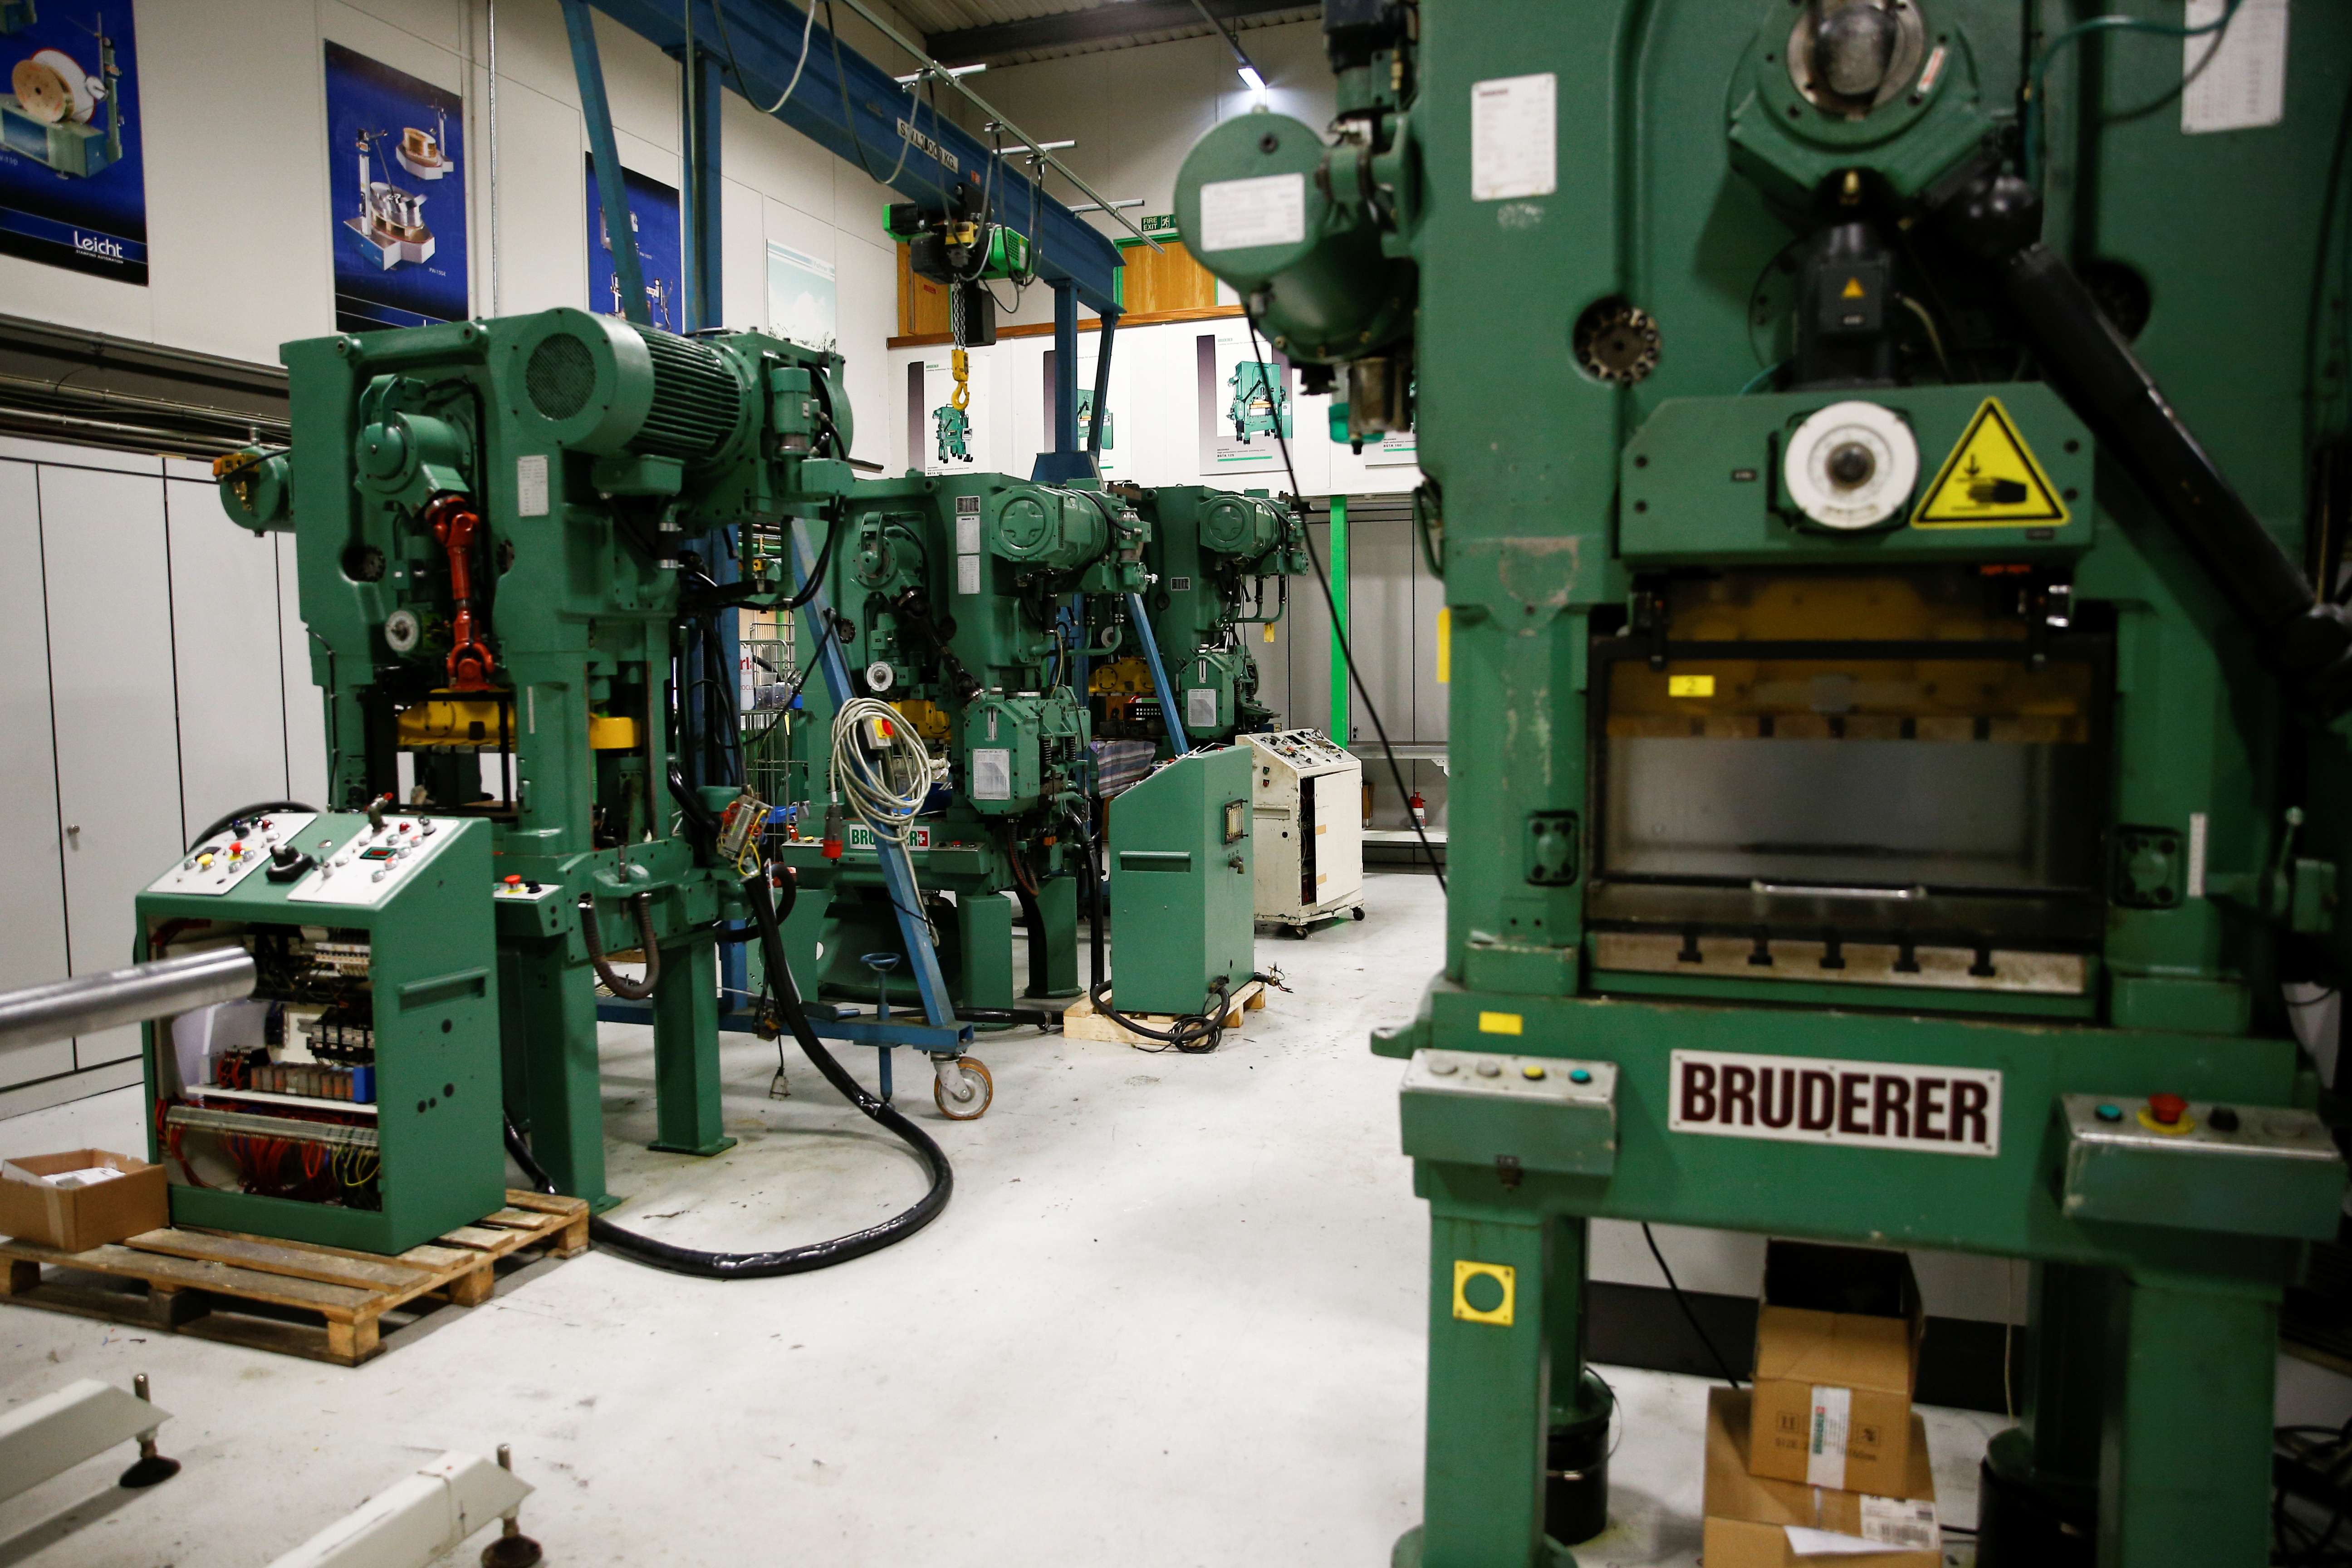 Machines produced by Bruderer Uk Ltd are seen inside the company's factory in Luton, Britain, January 24, 2020. Picture taken January 24, 2020. REUTERS/Henry Nicholls